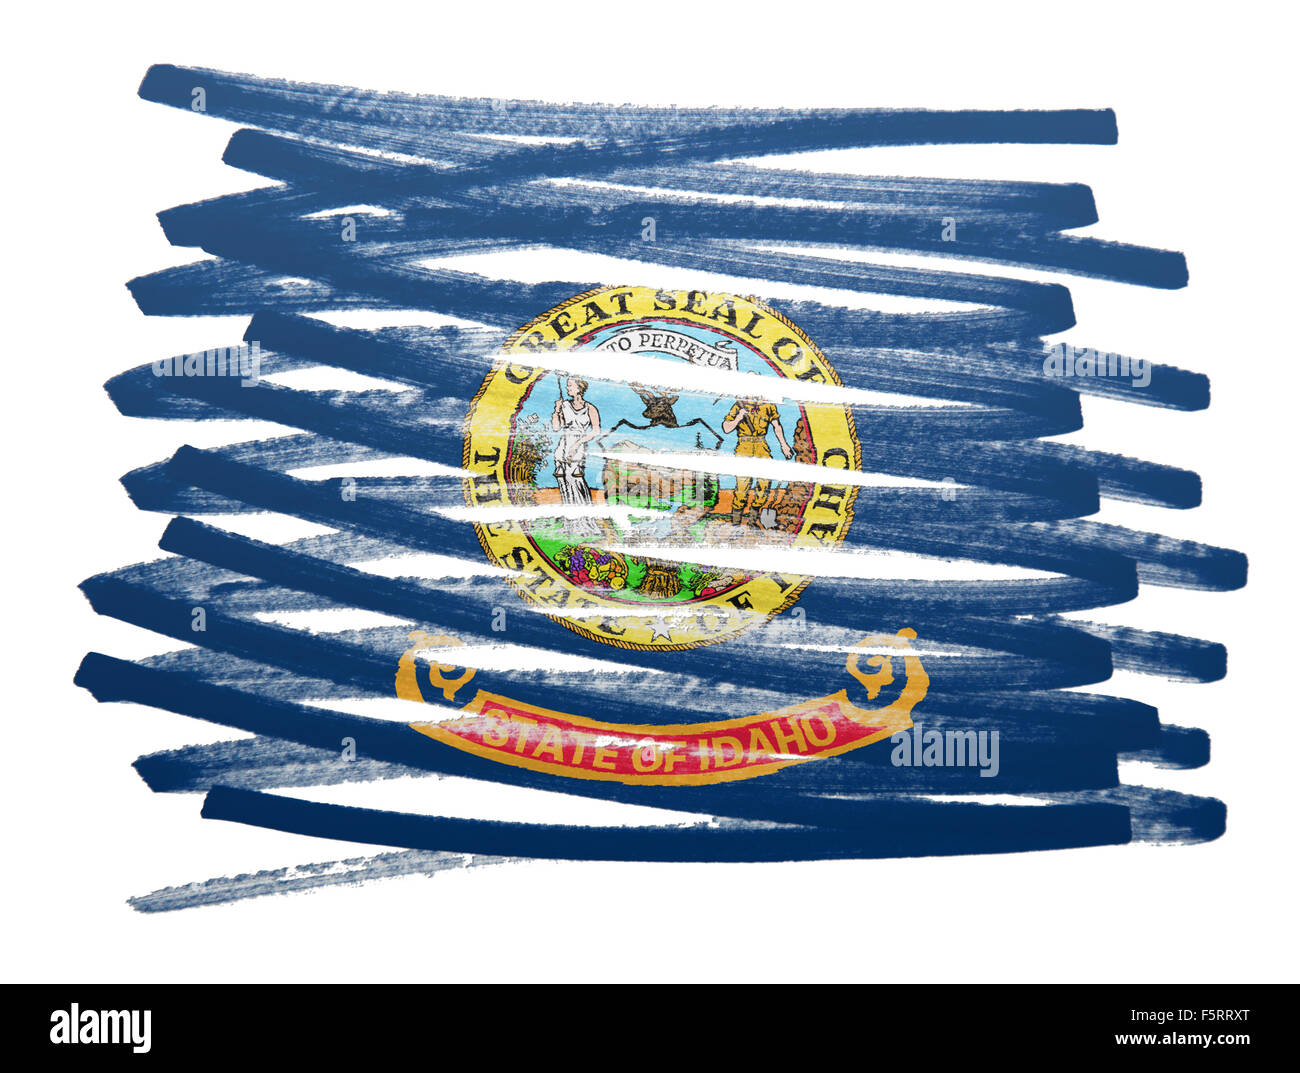 Flag illustration made with pen - Idaho - Stock Image